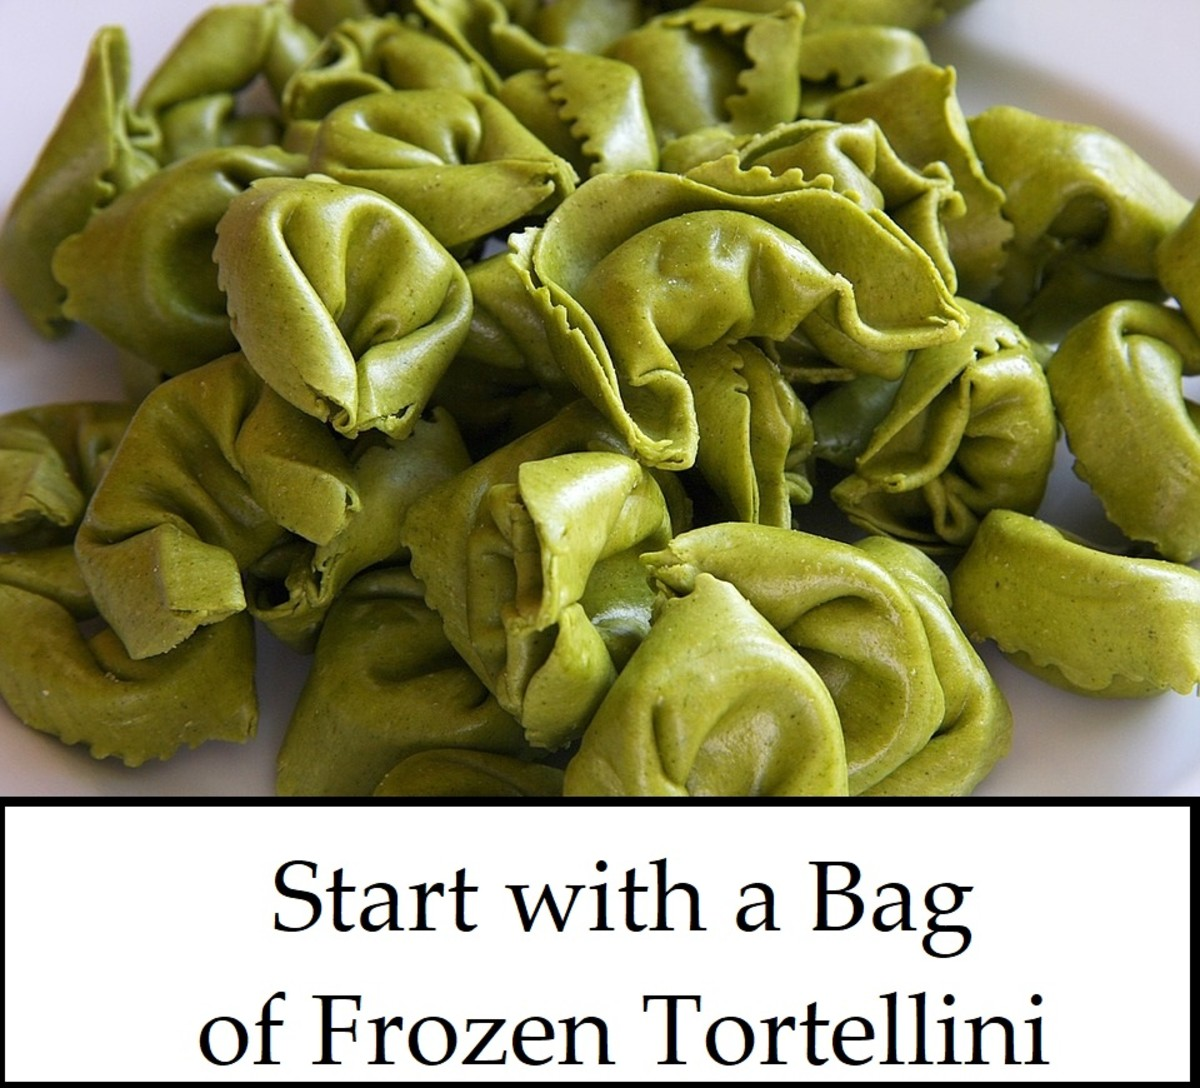 spinach tortellini waiting to become something wonderful